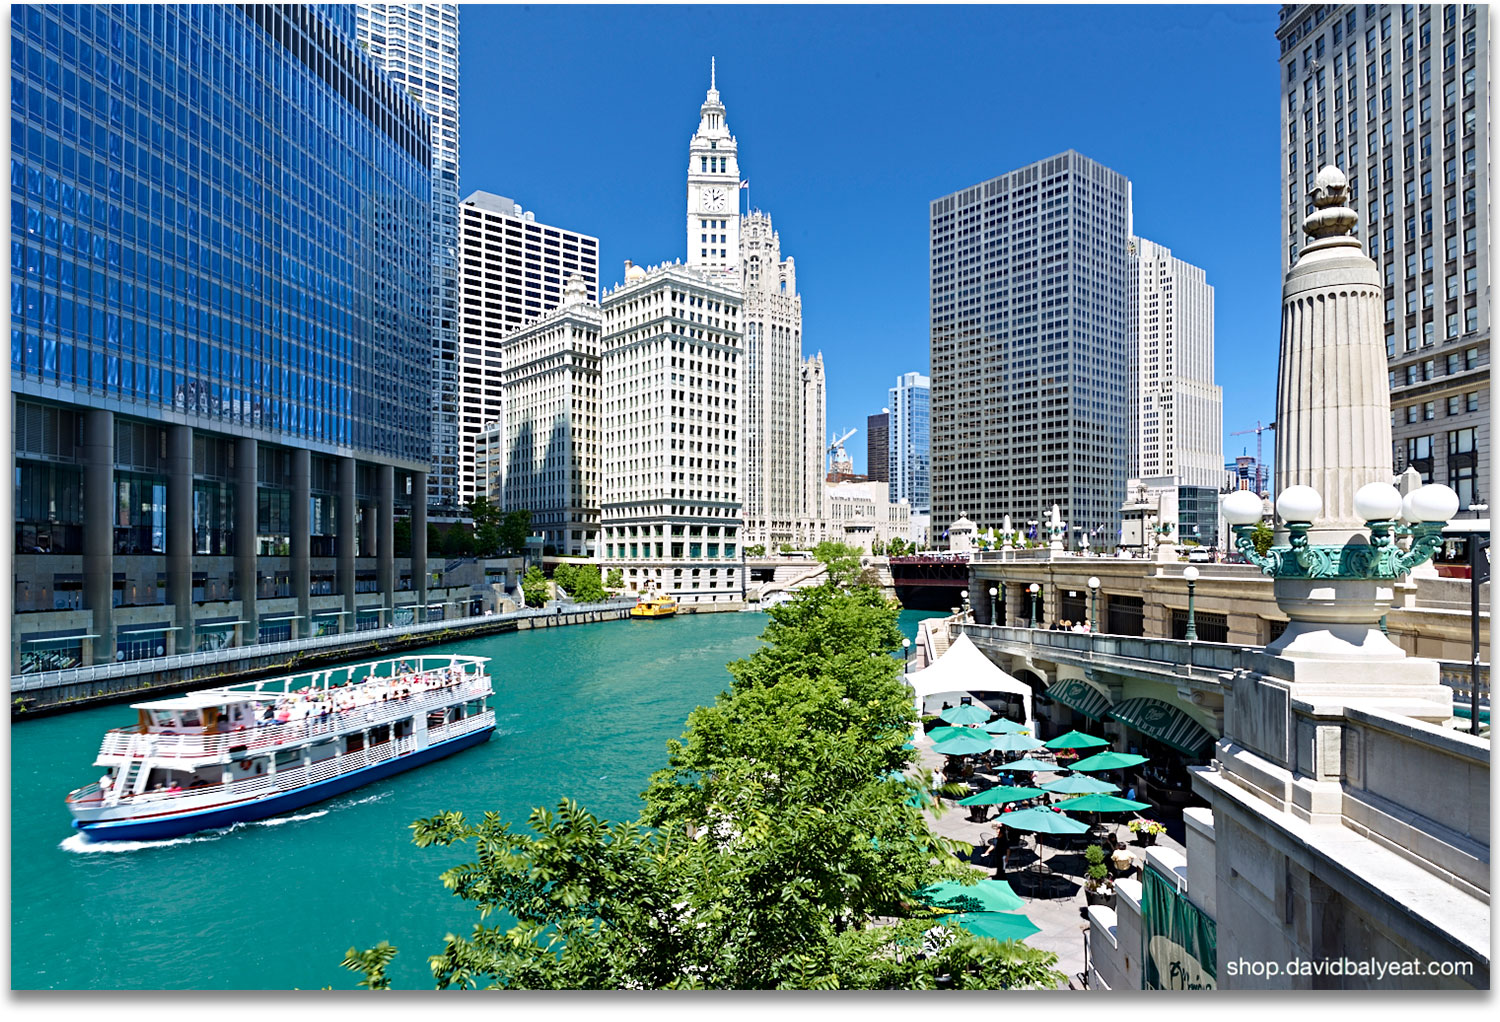 Great Chicago Riverwalk Ferry Boat Patio Diners High Definition HD Professional  Cityscape Photography